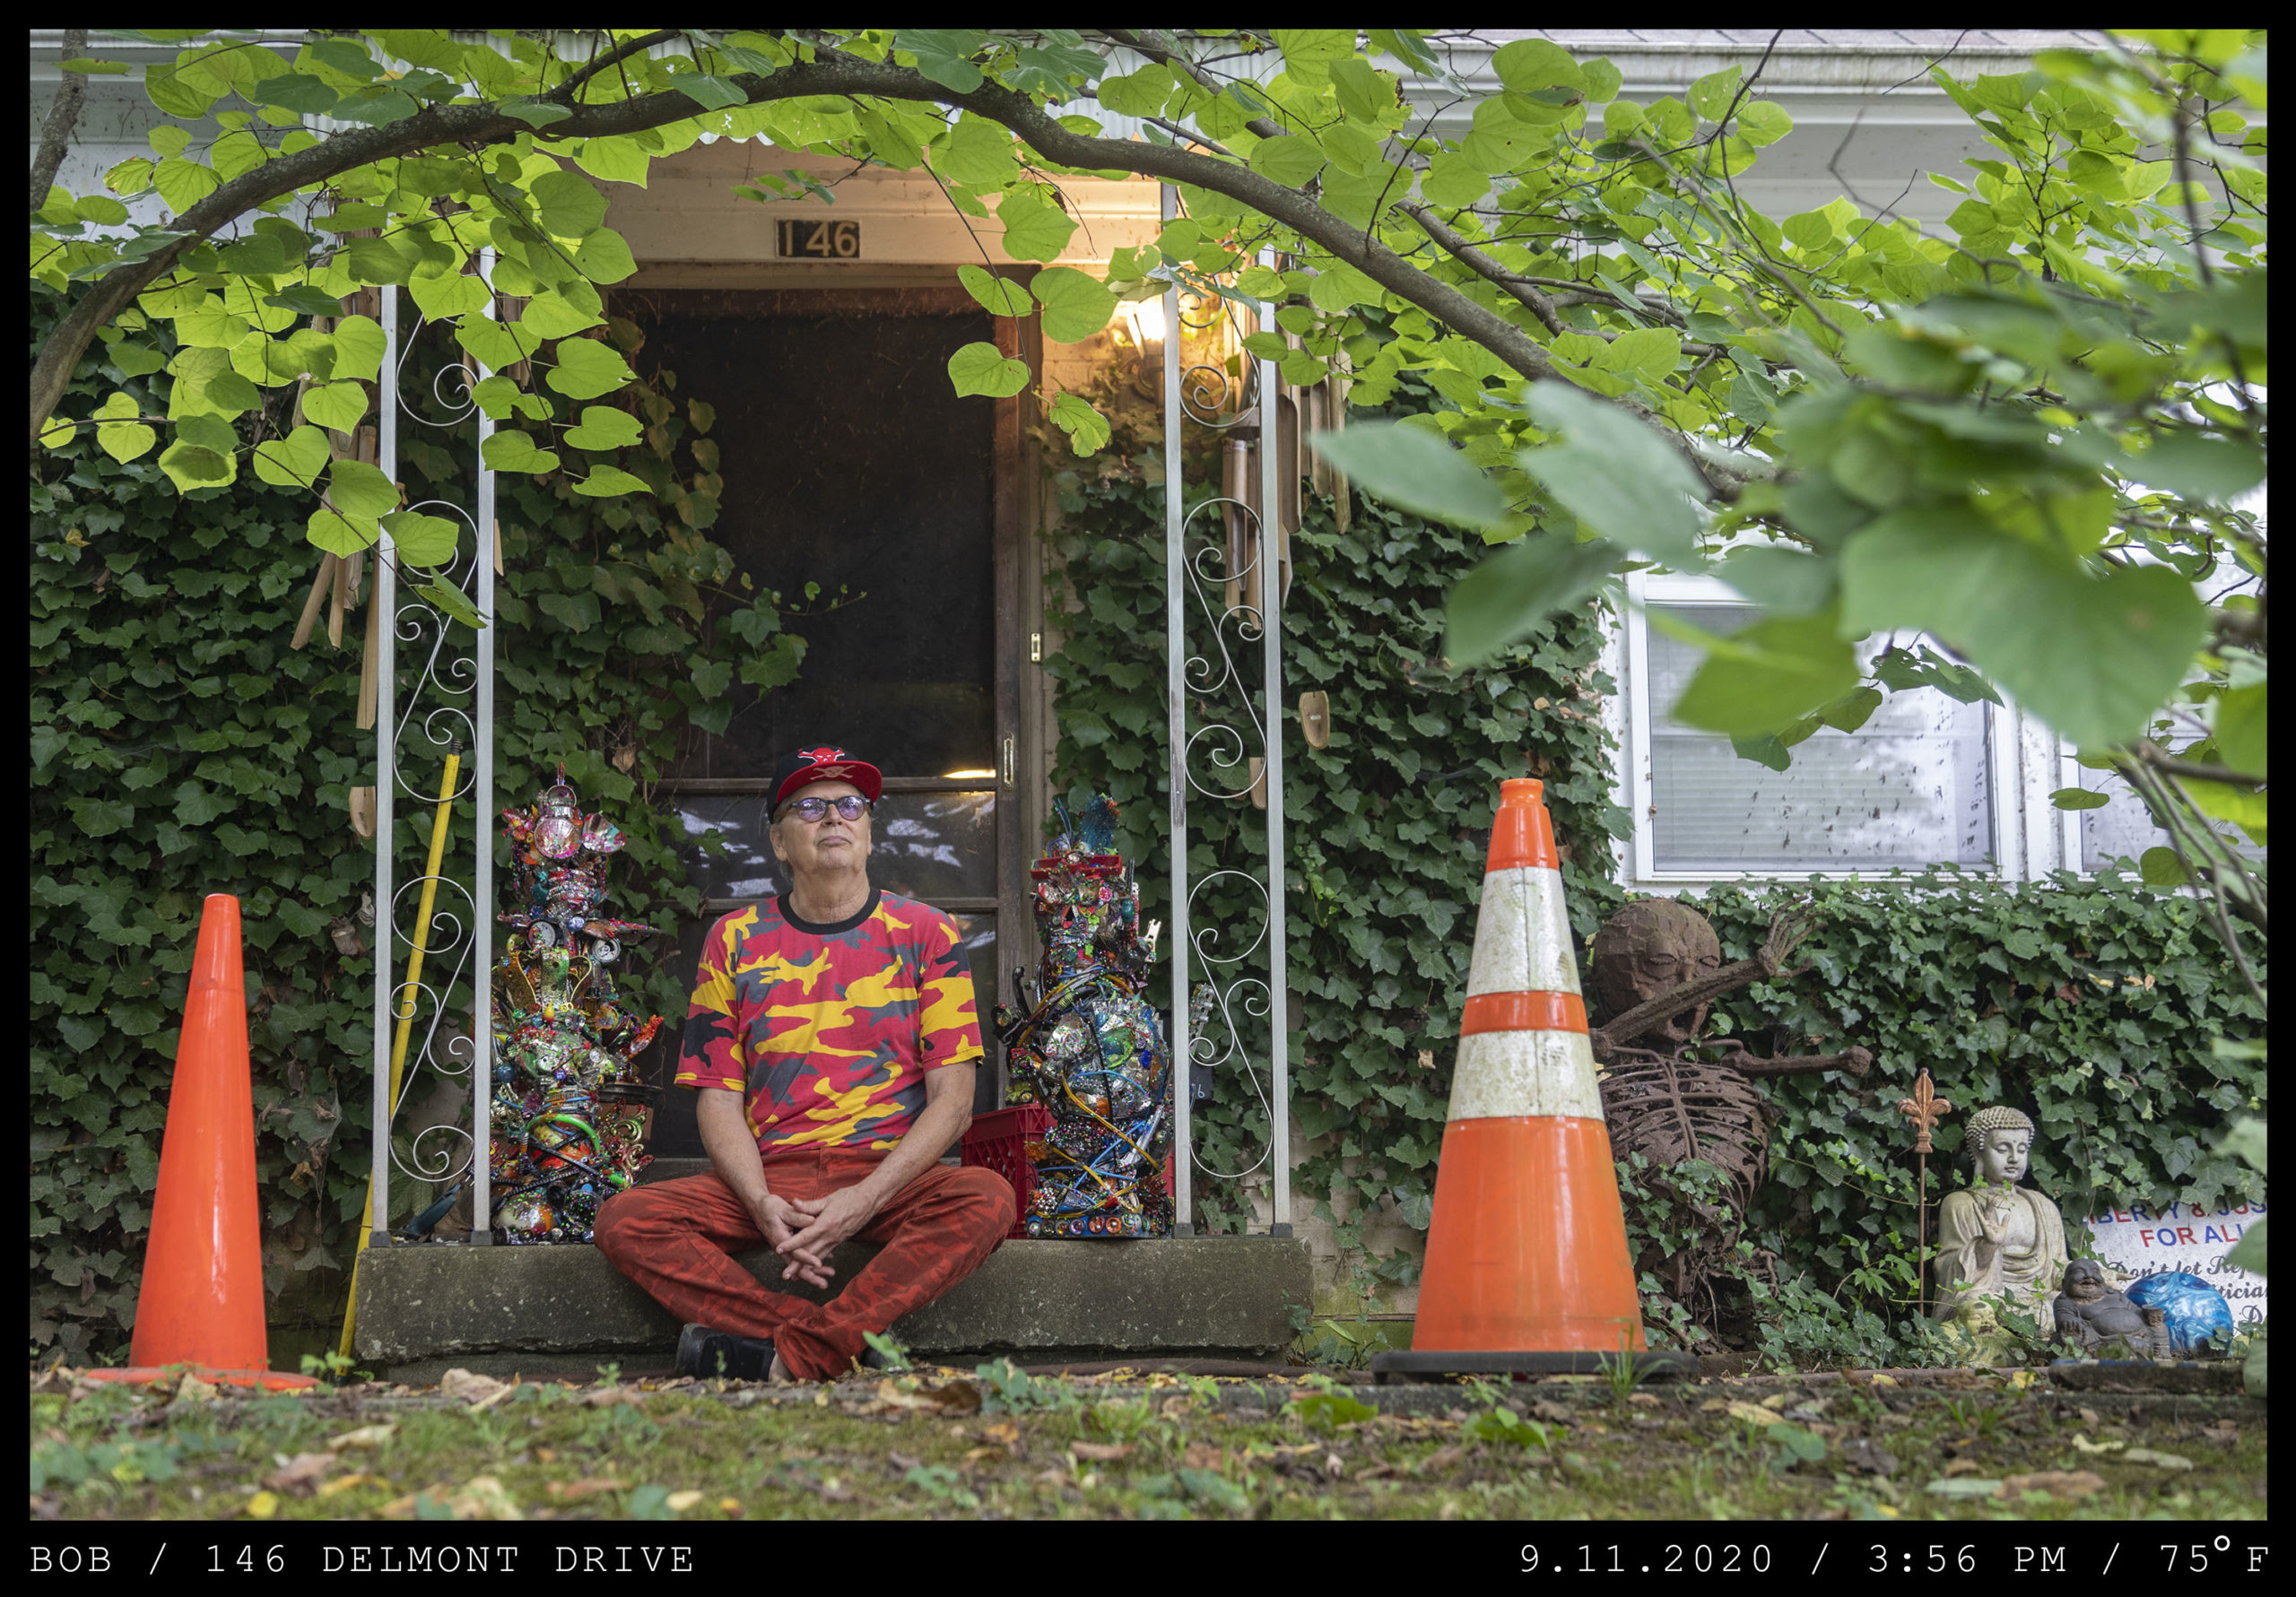 An older man dressed in a yellow, red, and black camo-patterned shirt and a red billed cap sits cross-ledded in a garden between two orange traffic cones.